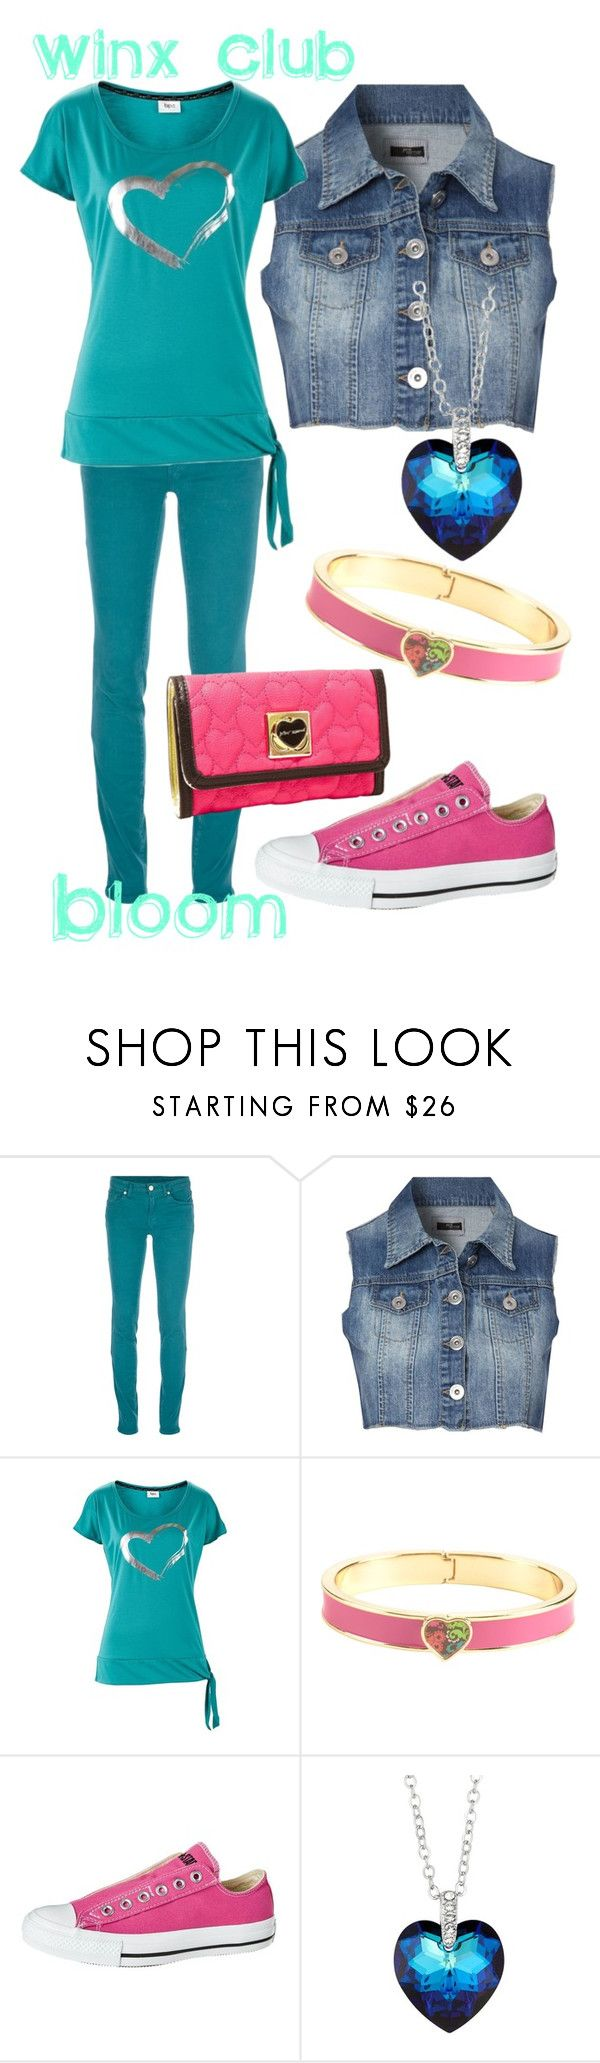 """""""Bloom, Winx Club"""" by blackrabbitmegapig ❤ liked on Polyvore featuring 7 For All Mankind, Jane Norman, Vera Bradley, Converse, Jon Richard and Betsey Johnson"""